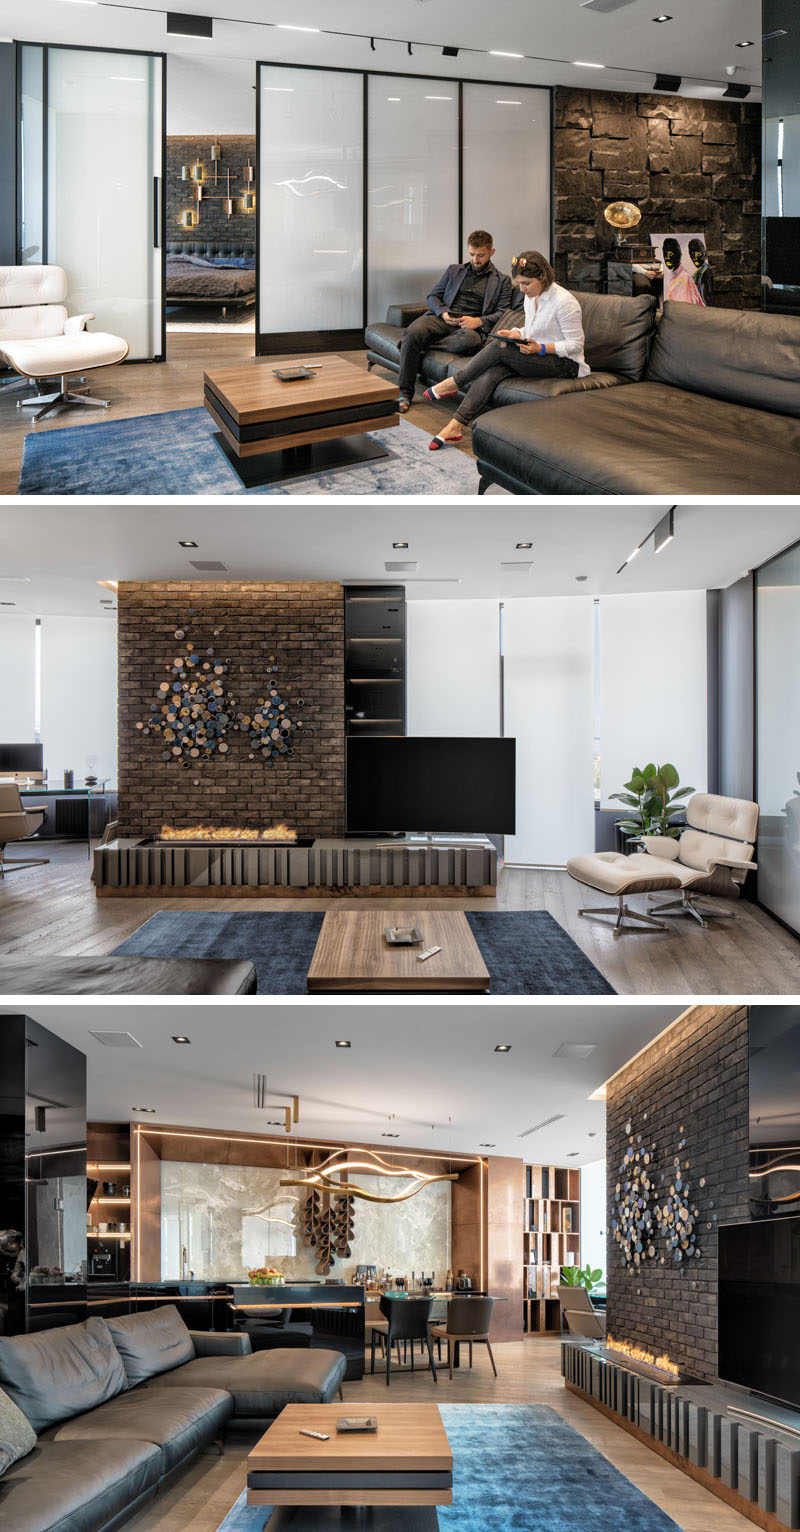 The dark interior palette of this modern apartment uses a variety of materials throughout its design, such as brick, natural African black stone, onyx, leather, copper ,wood etc. It also has a 'smart glass' wall that can change from opaque to transparent. #GlassWall #InteriorDesign #ApartmentDesign #ModernApartment